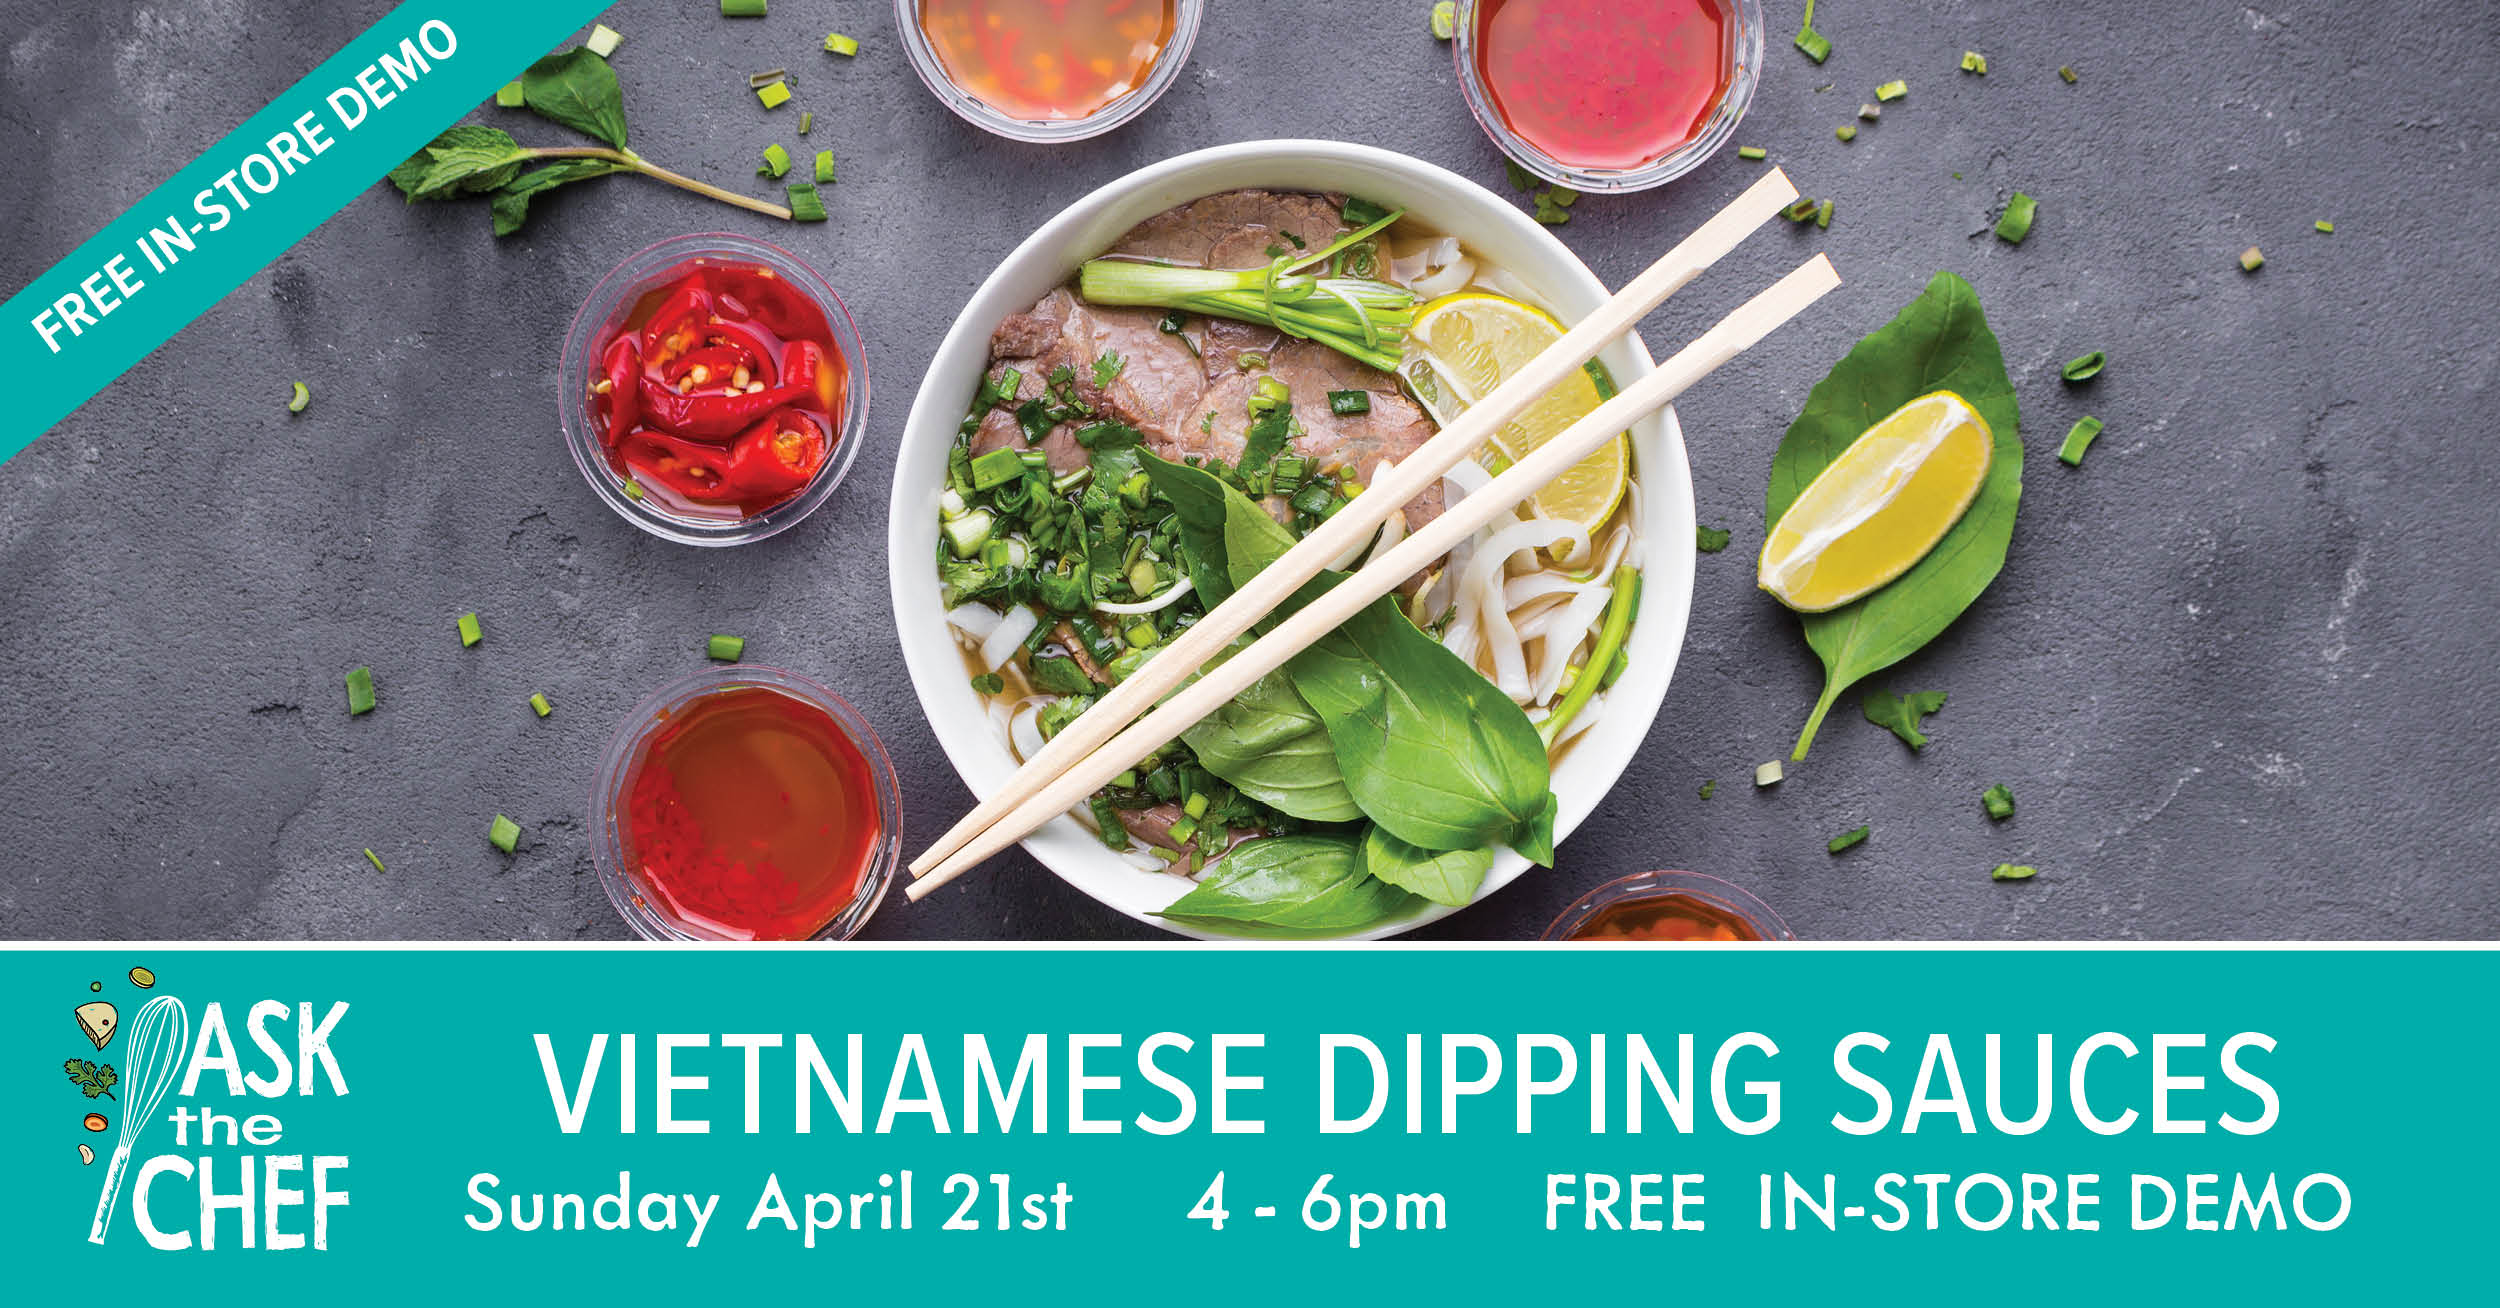 Ask the Chef Vietnamese Dipping Sauces Apr 2019_FB.jpg